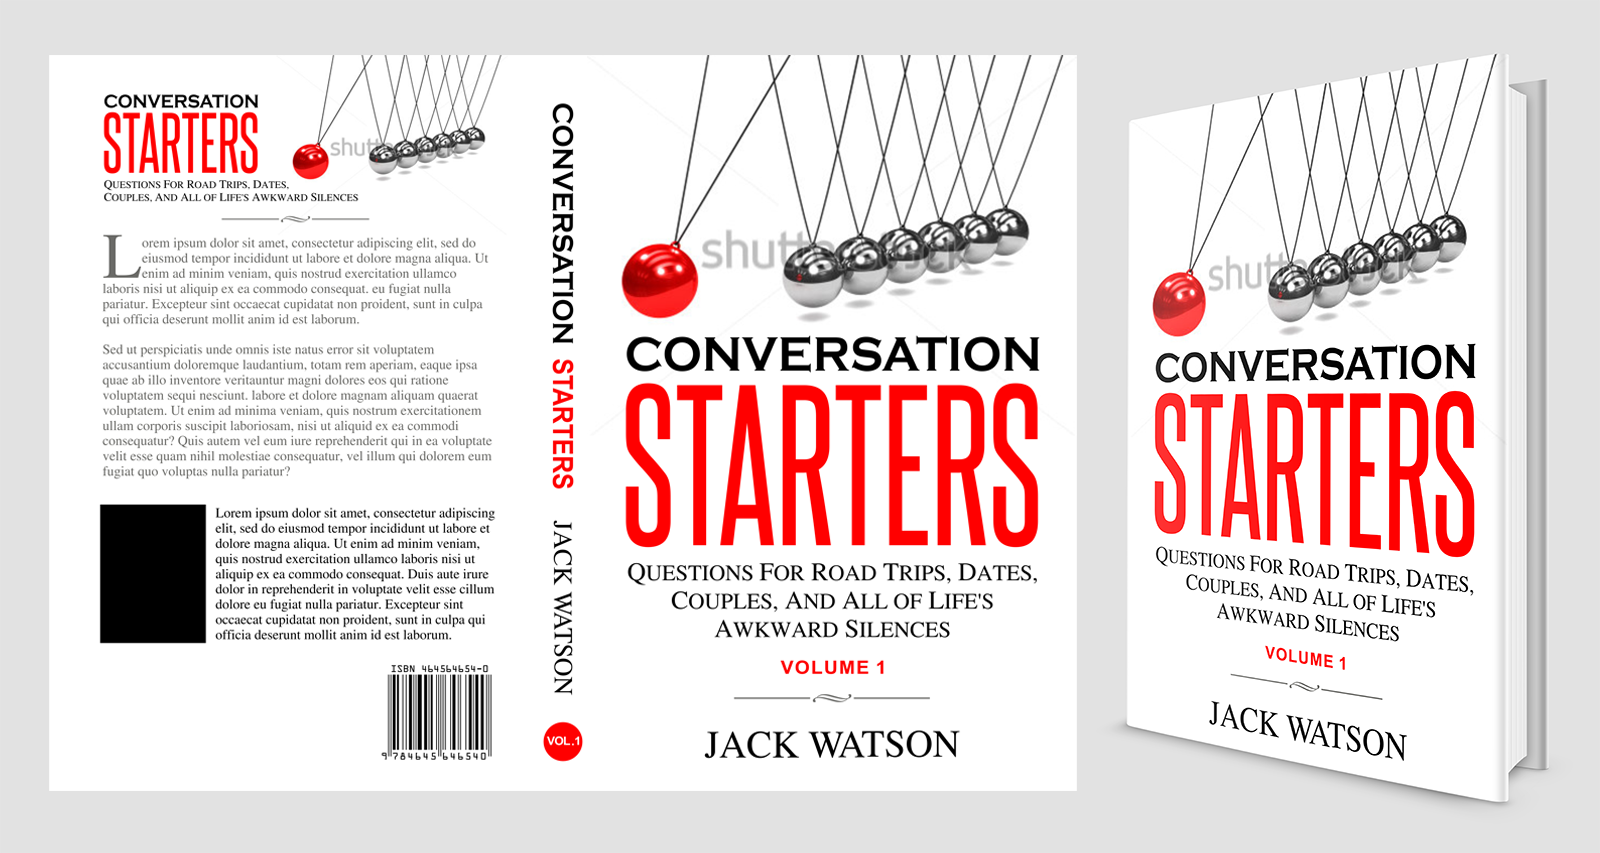 Create a fun and interesting cover for a conversation starters book